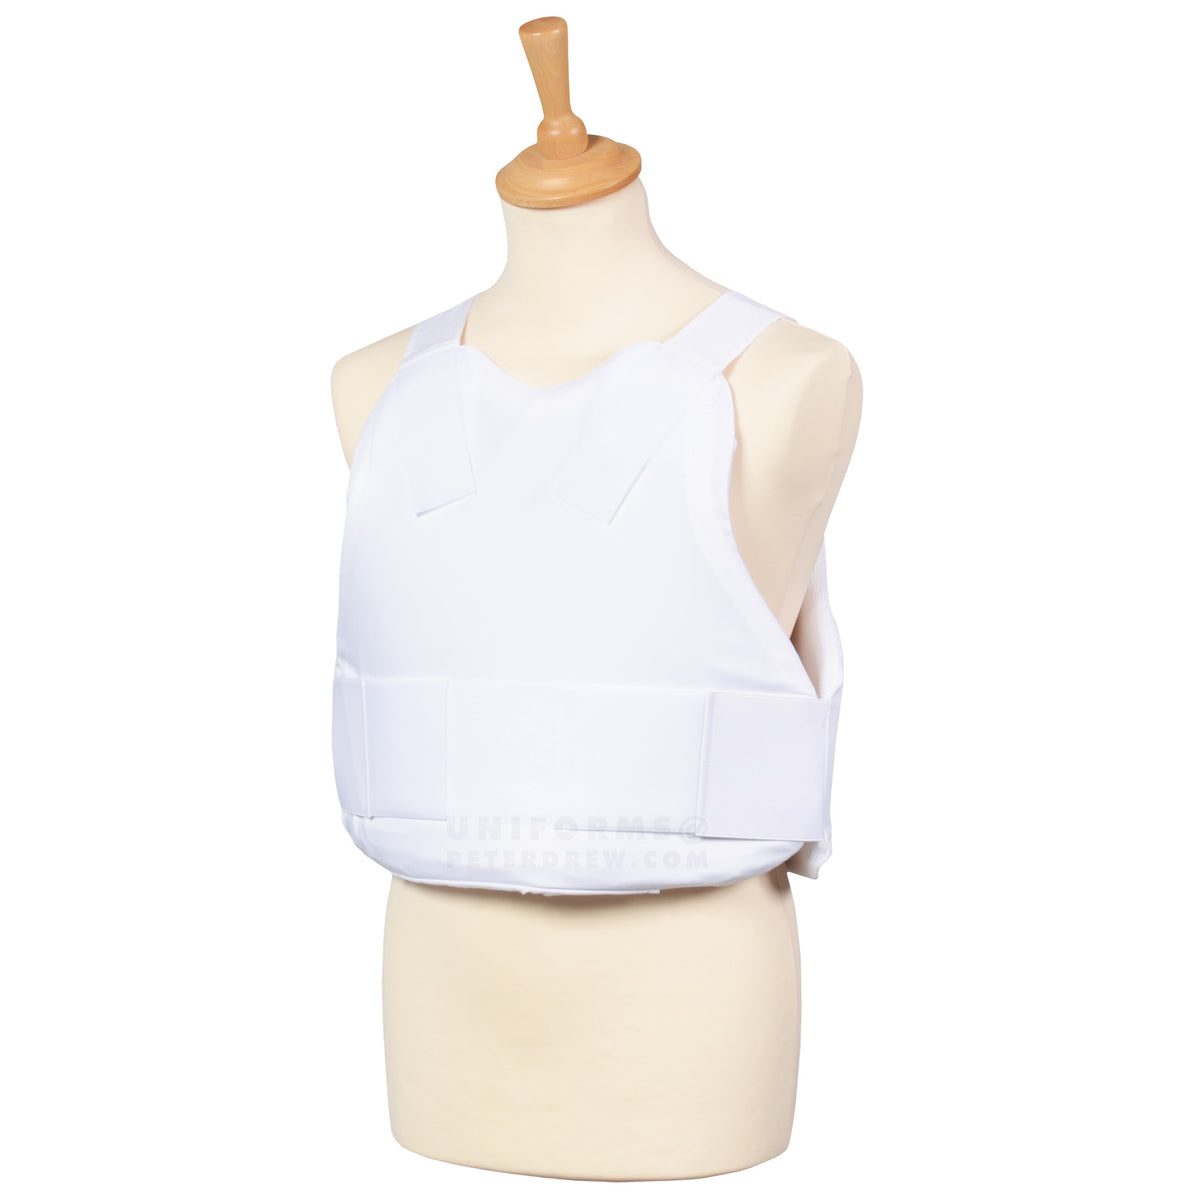 Covert Body Armour White - peterdrew.com  - 1